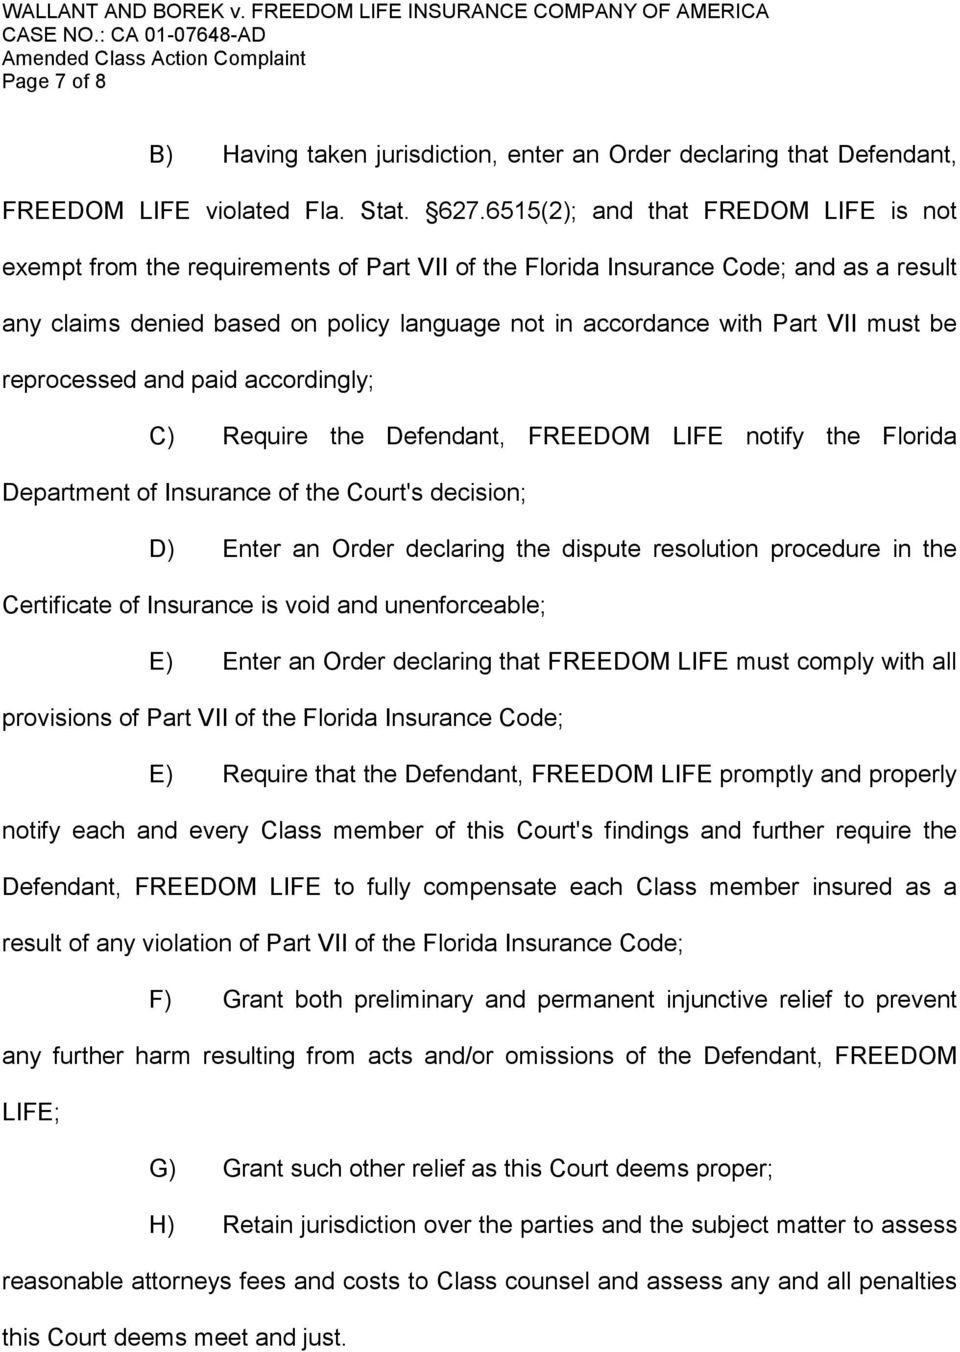 must be reprocessed and paid accordingly; C) Require the Defendant, FREEDOM LIFE notify the Florida Department of Insurance of the Court's decision; D) Enter an Order declaring the dispute resolution